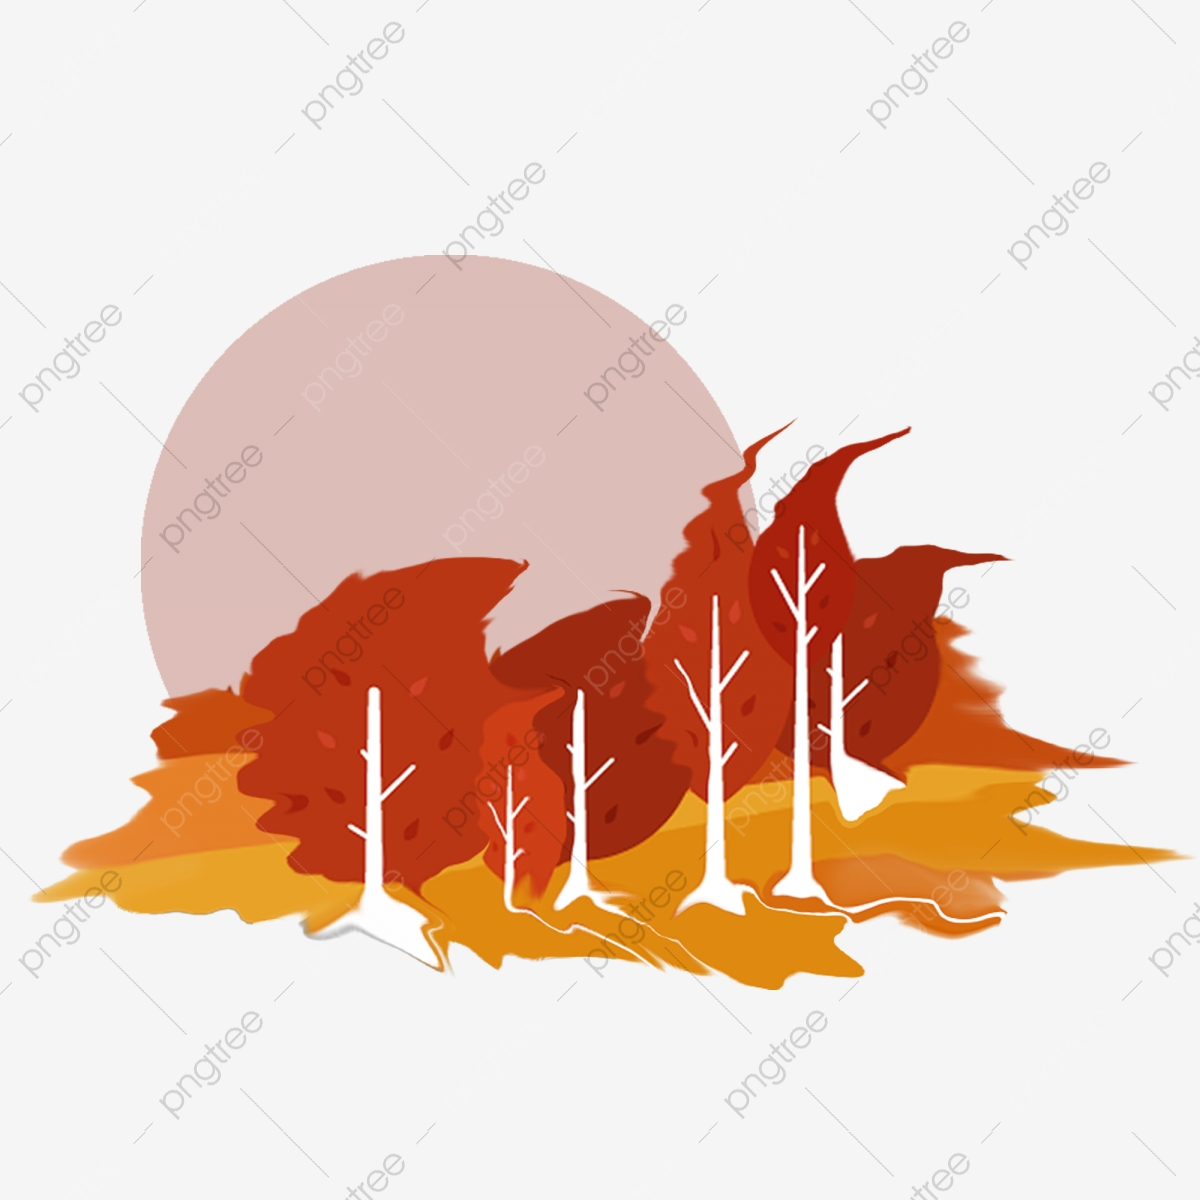 Windy clipart forest. Hand painted fall warm